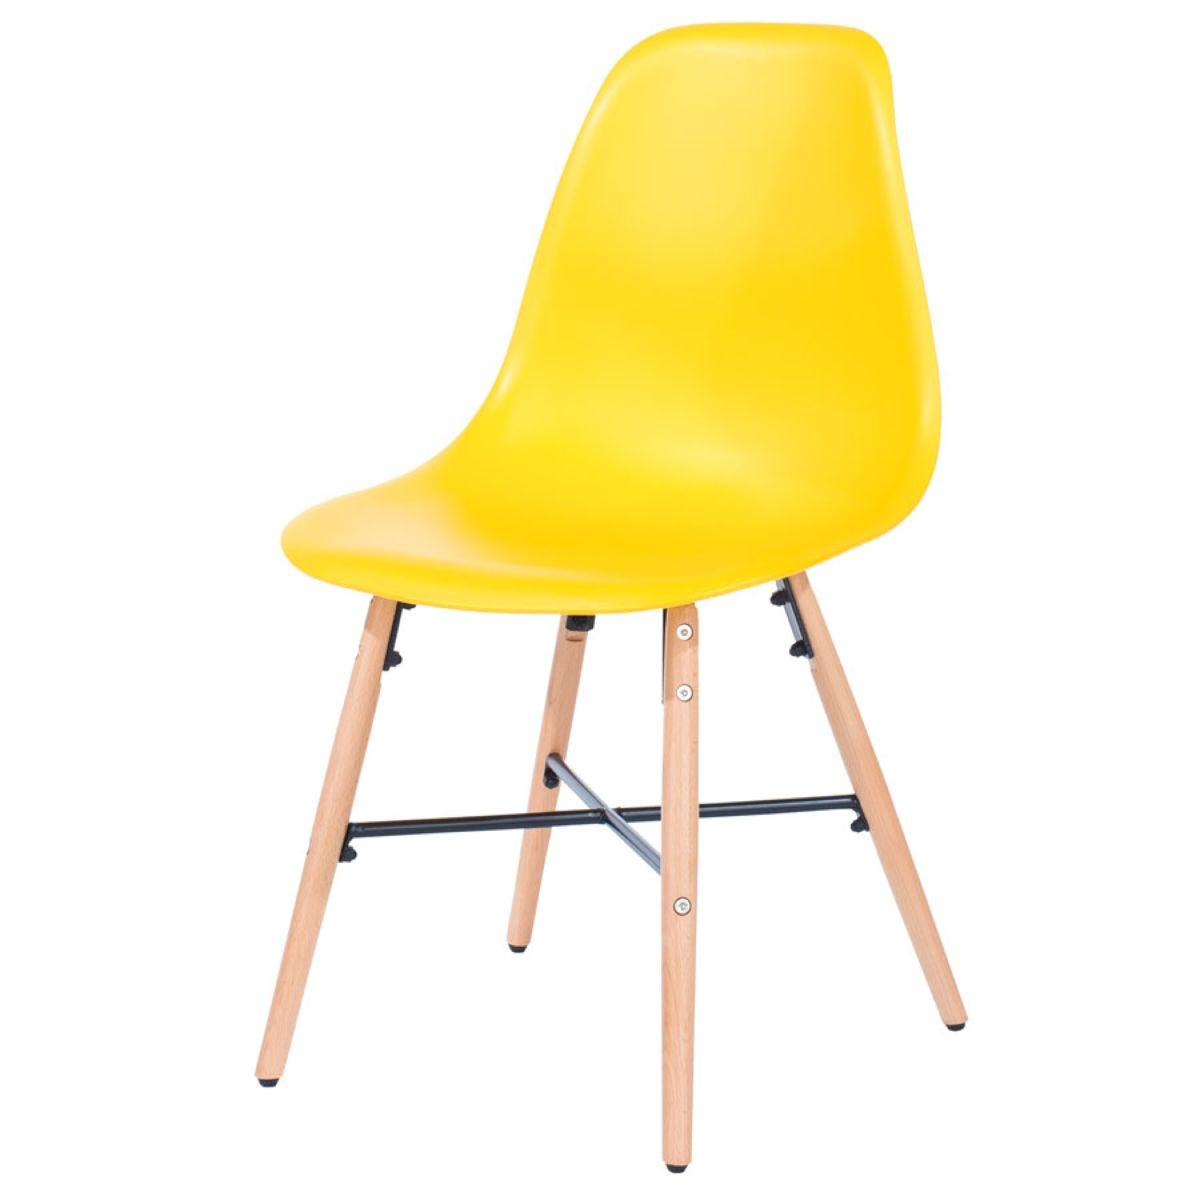 Roloku Pair of Chairs with Metal Cross Rails - Yellow